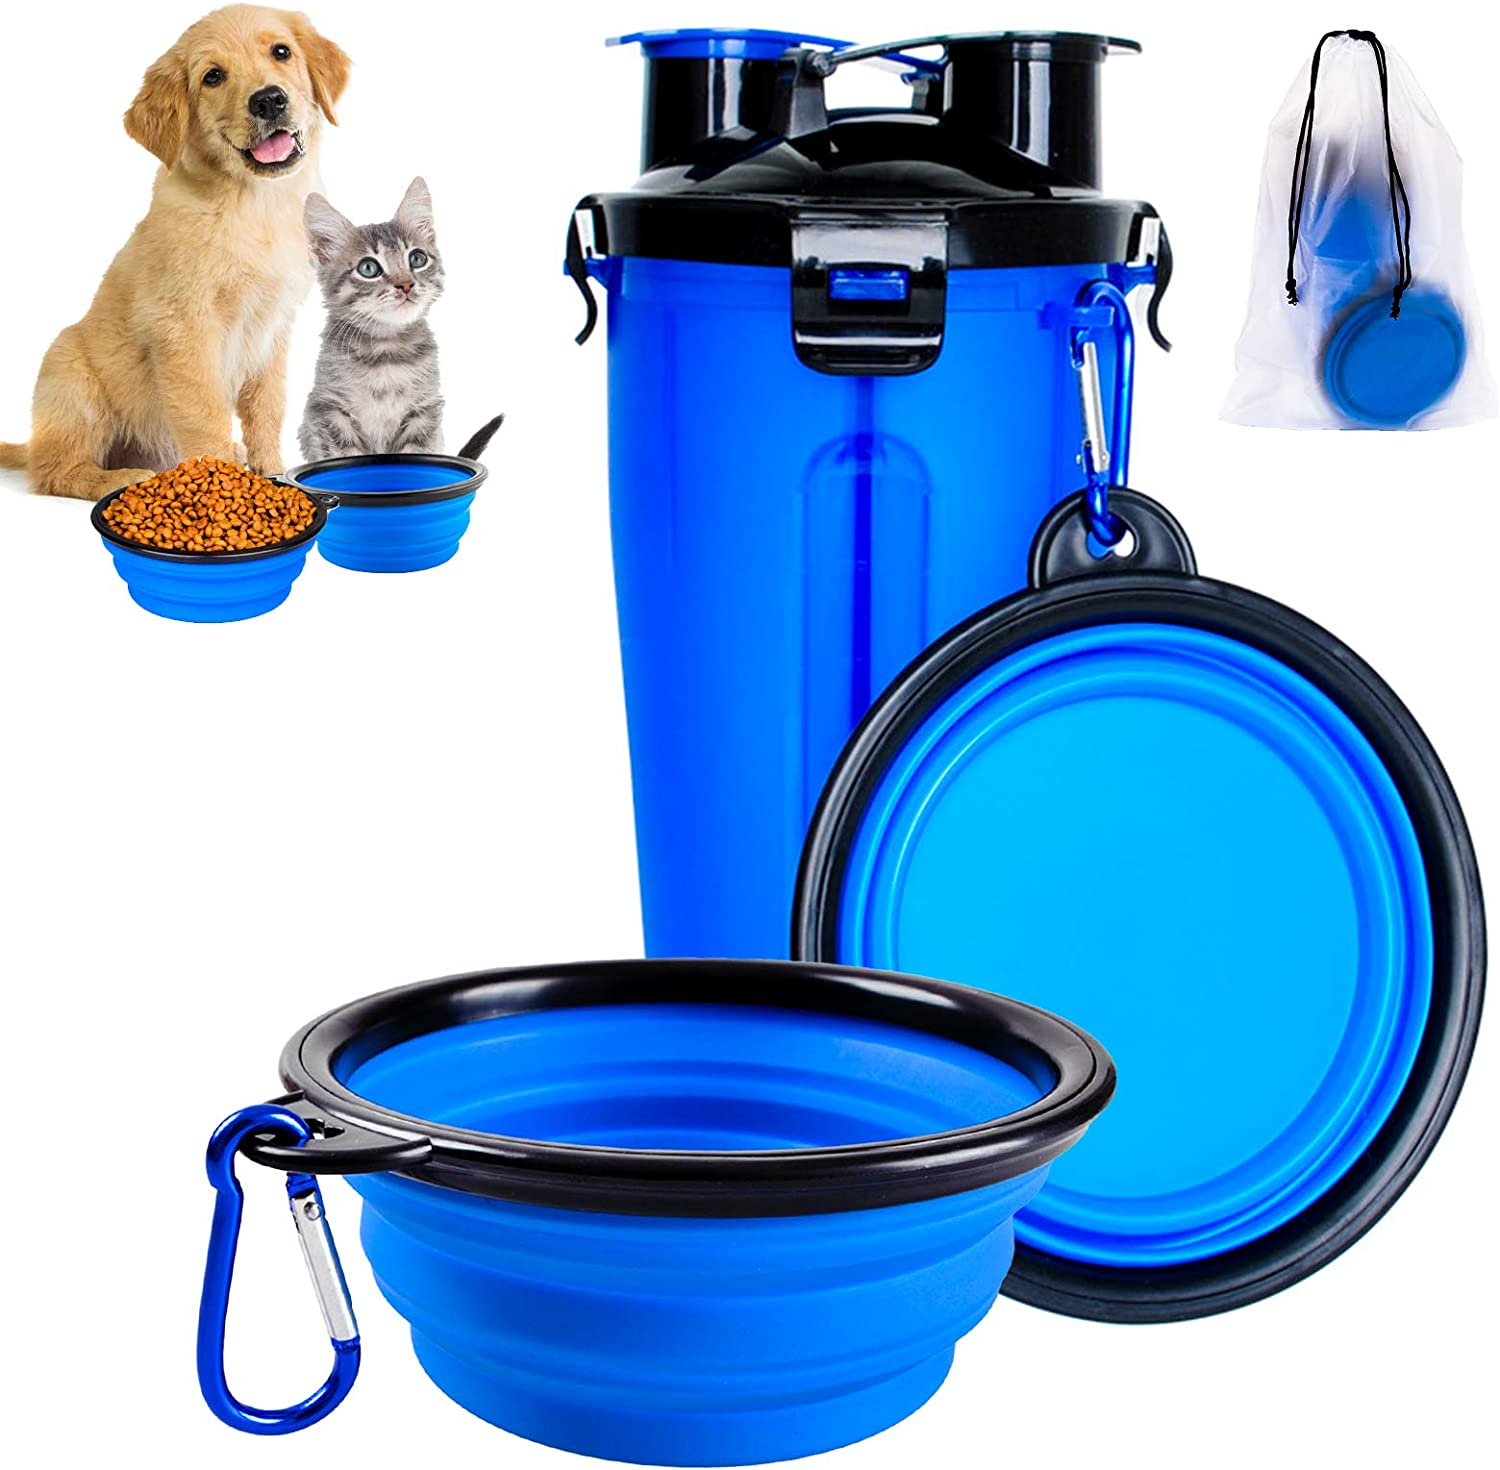 BZ Dog Travel Water Bottle, 2 in 1 Portable Dog Water Dispenser and Food Container with 2 Collapsible Bowls for Your Pets Walking, Traveling, Hiking and Camping